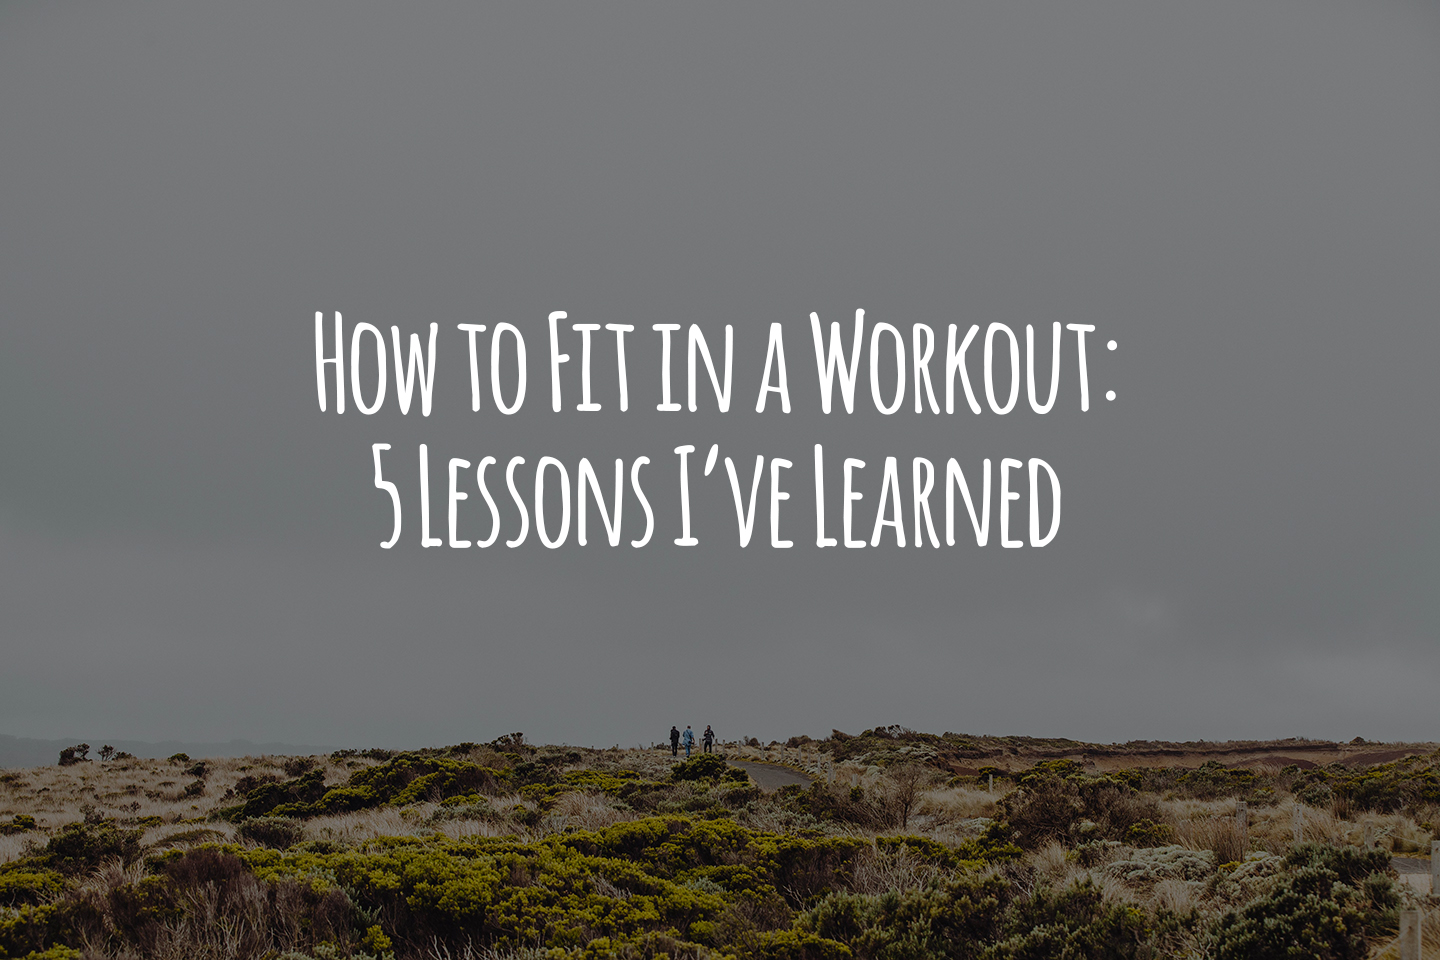 How to Fit in a Workout: 5 Lessons I've Learned